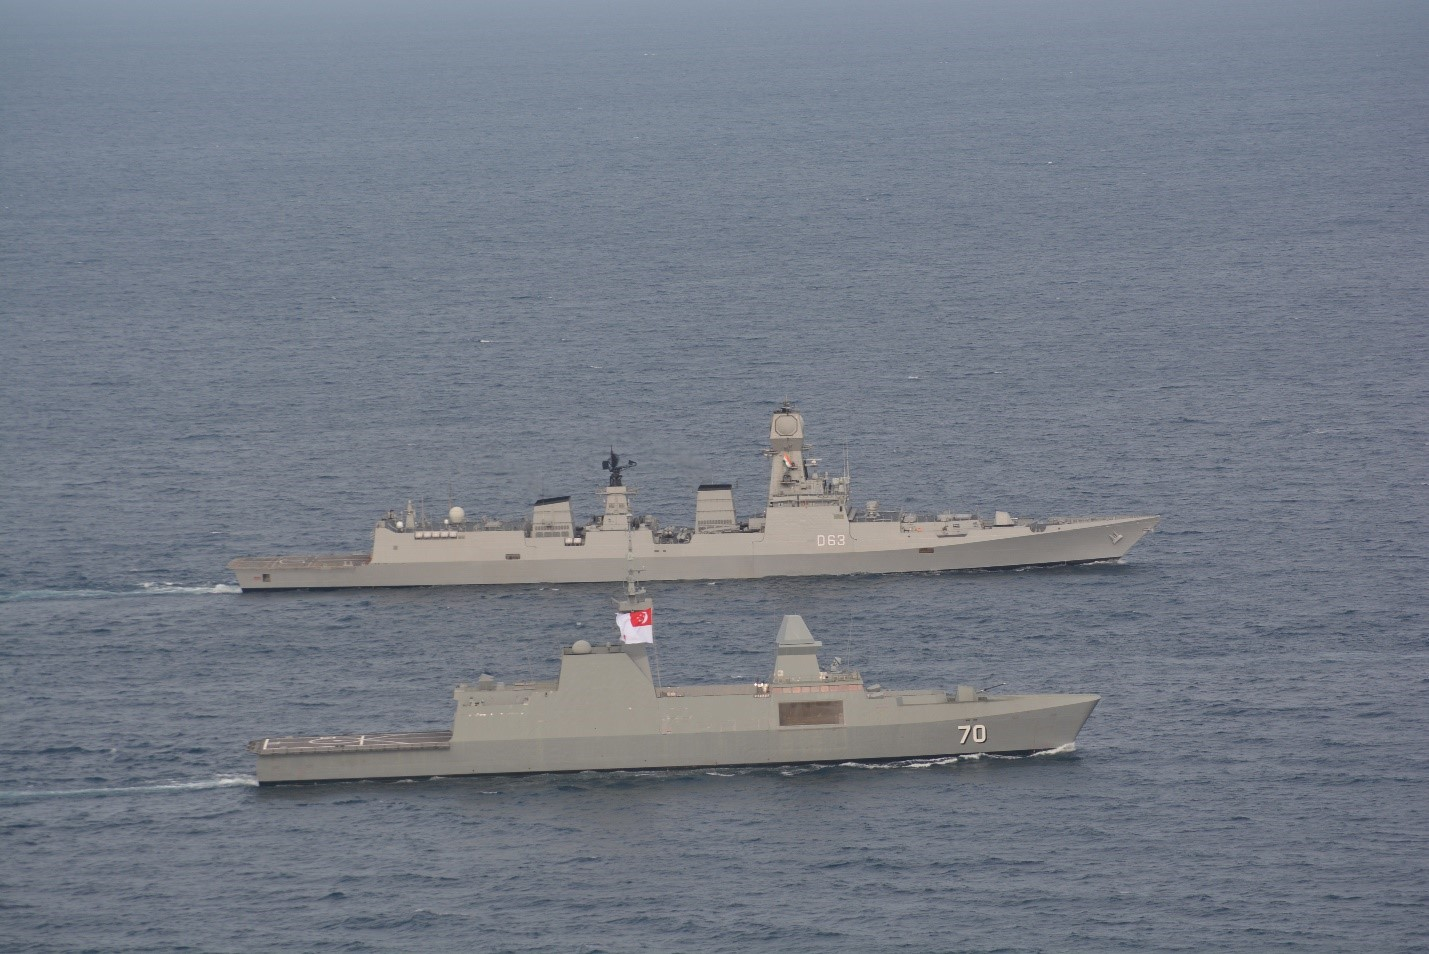 INS Kolkata and RSS Stadfast are undertaking a close manoeuvre in this picture. Indian Navy and Republic of Singapore Navy conduct annual naval exercise SIMBEX 2019 in South China Sea. Indian Navy Ships Kolkata and Shakti took part in the exercise, along with submarine hunter and surveillance aircraft Poseidon P8I. Photo courtesy: HCI Singapore